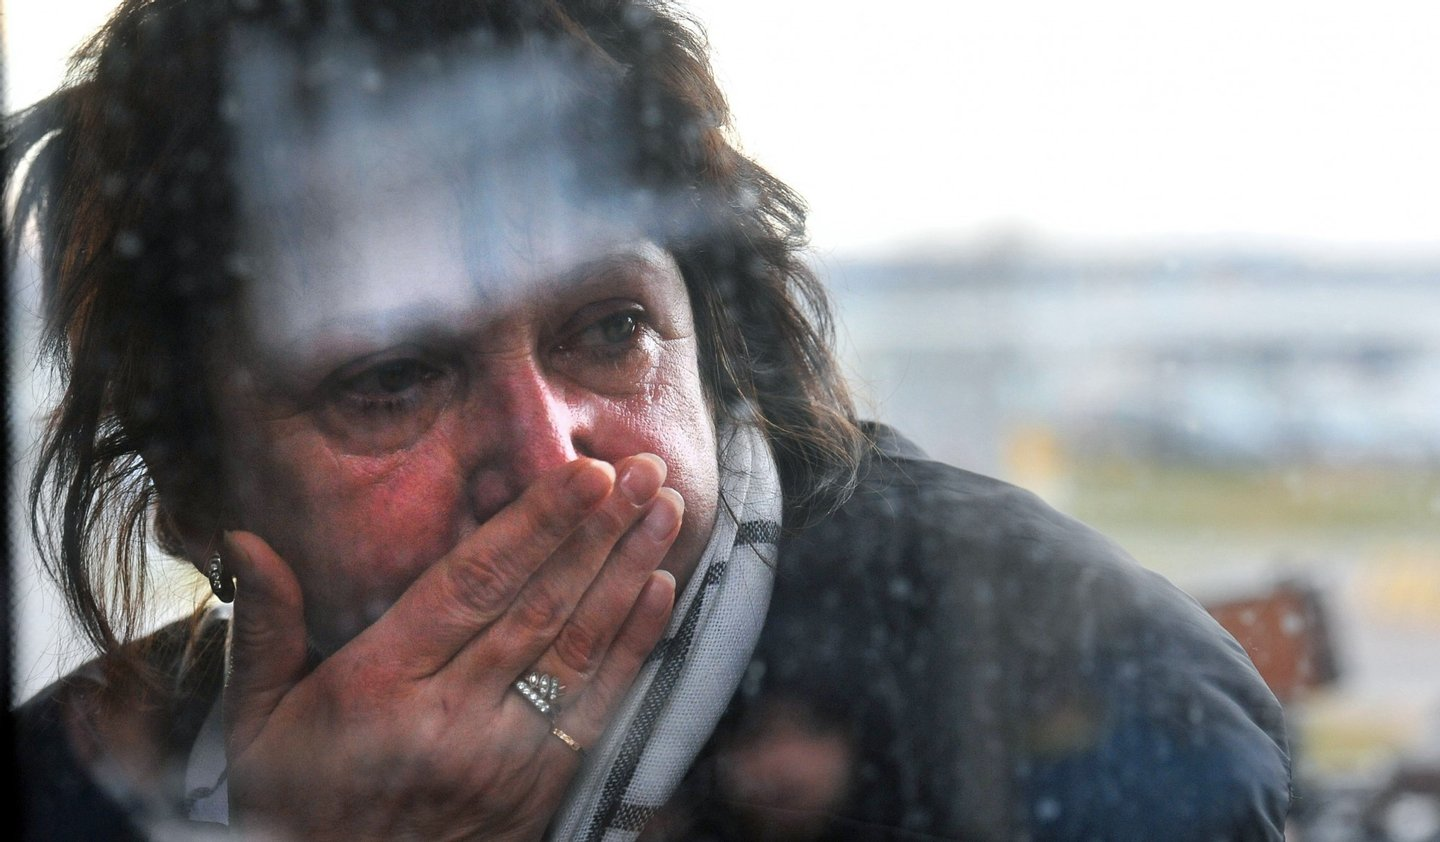 "A relative reacts at Pulkovo international airport outside Saint Petersburg after a Russian plane with 224 people on board crashed in a mountainous part of Egypt's Sinai Peninsula on October 31, 2015. Ambulances reached the site and began evacuating ""casualties,"" officials and state media reported, without elaborating on their condition. The plane took off early in the morning from the southern Sinai resort of Sharm el-Sheikh bound for Saint Petersburg in Russia but communication was lost 23 minutes after departure, officials said. AFP PHOTO / OLGA MALTSEVA        (Photo credit should read OLGA MALTSEVA/AFP/Getty Images)"